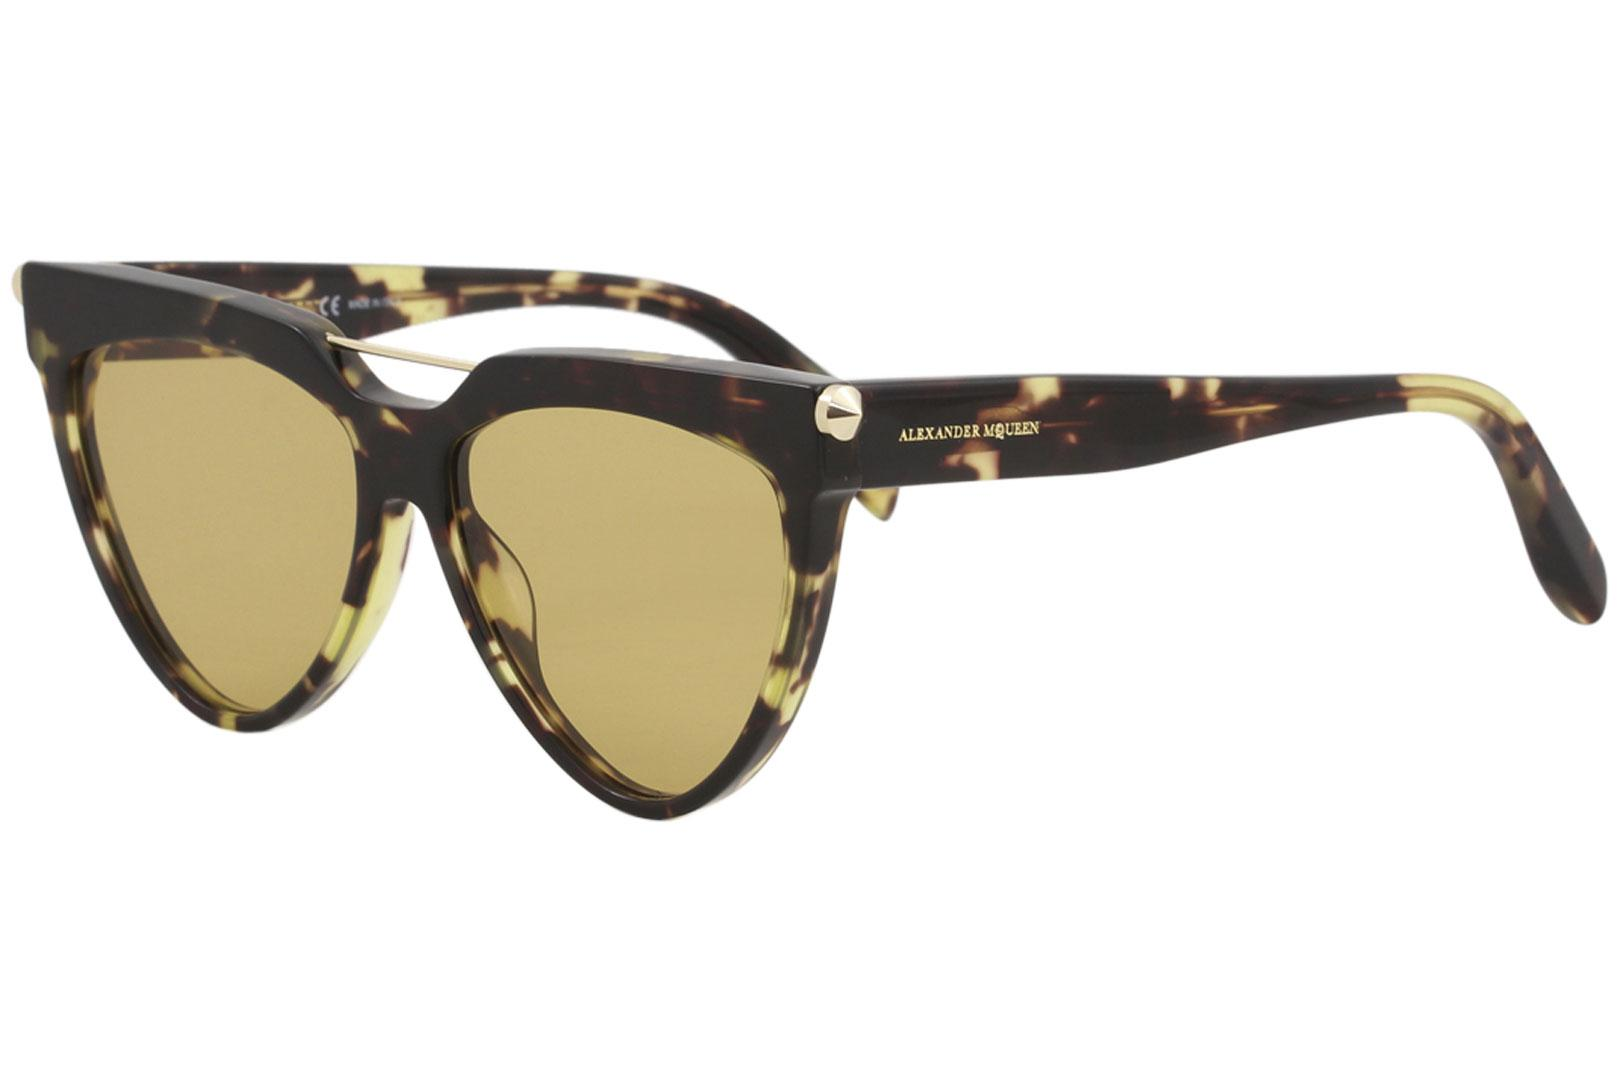 Image of Alexander McQueen Edge AM0087S AM/0087/S 001 Havana Pilot Sunglasses 58mm - Havana/Yellow   004 - Lens 58 Bridge 15 Temple 150mm